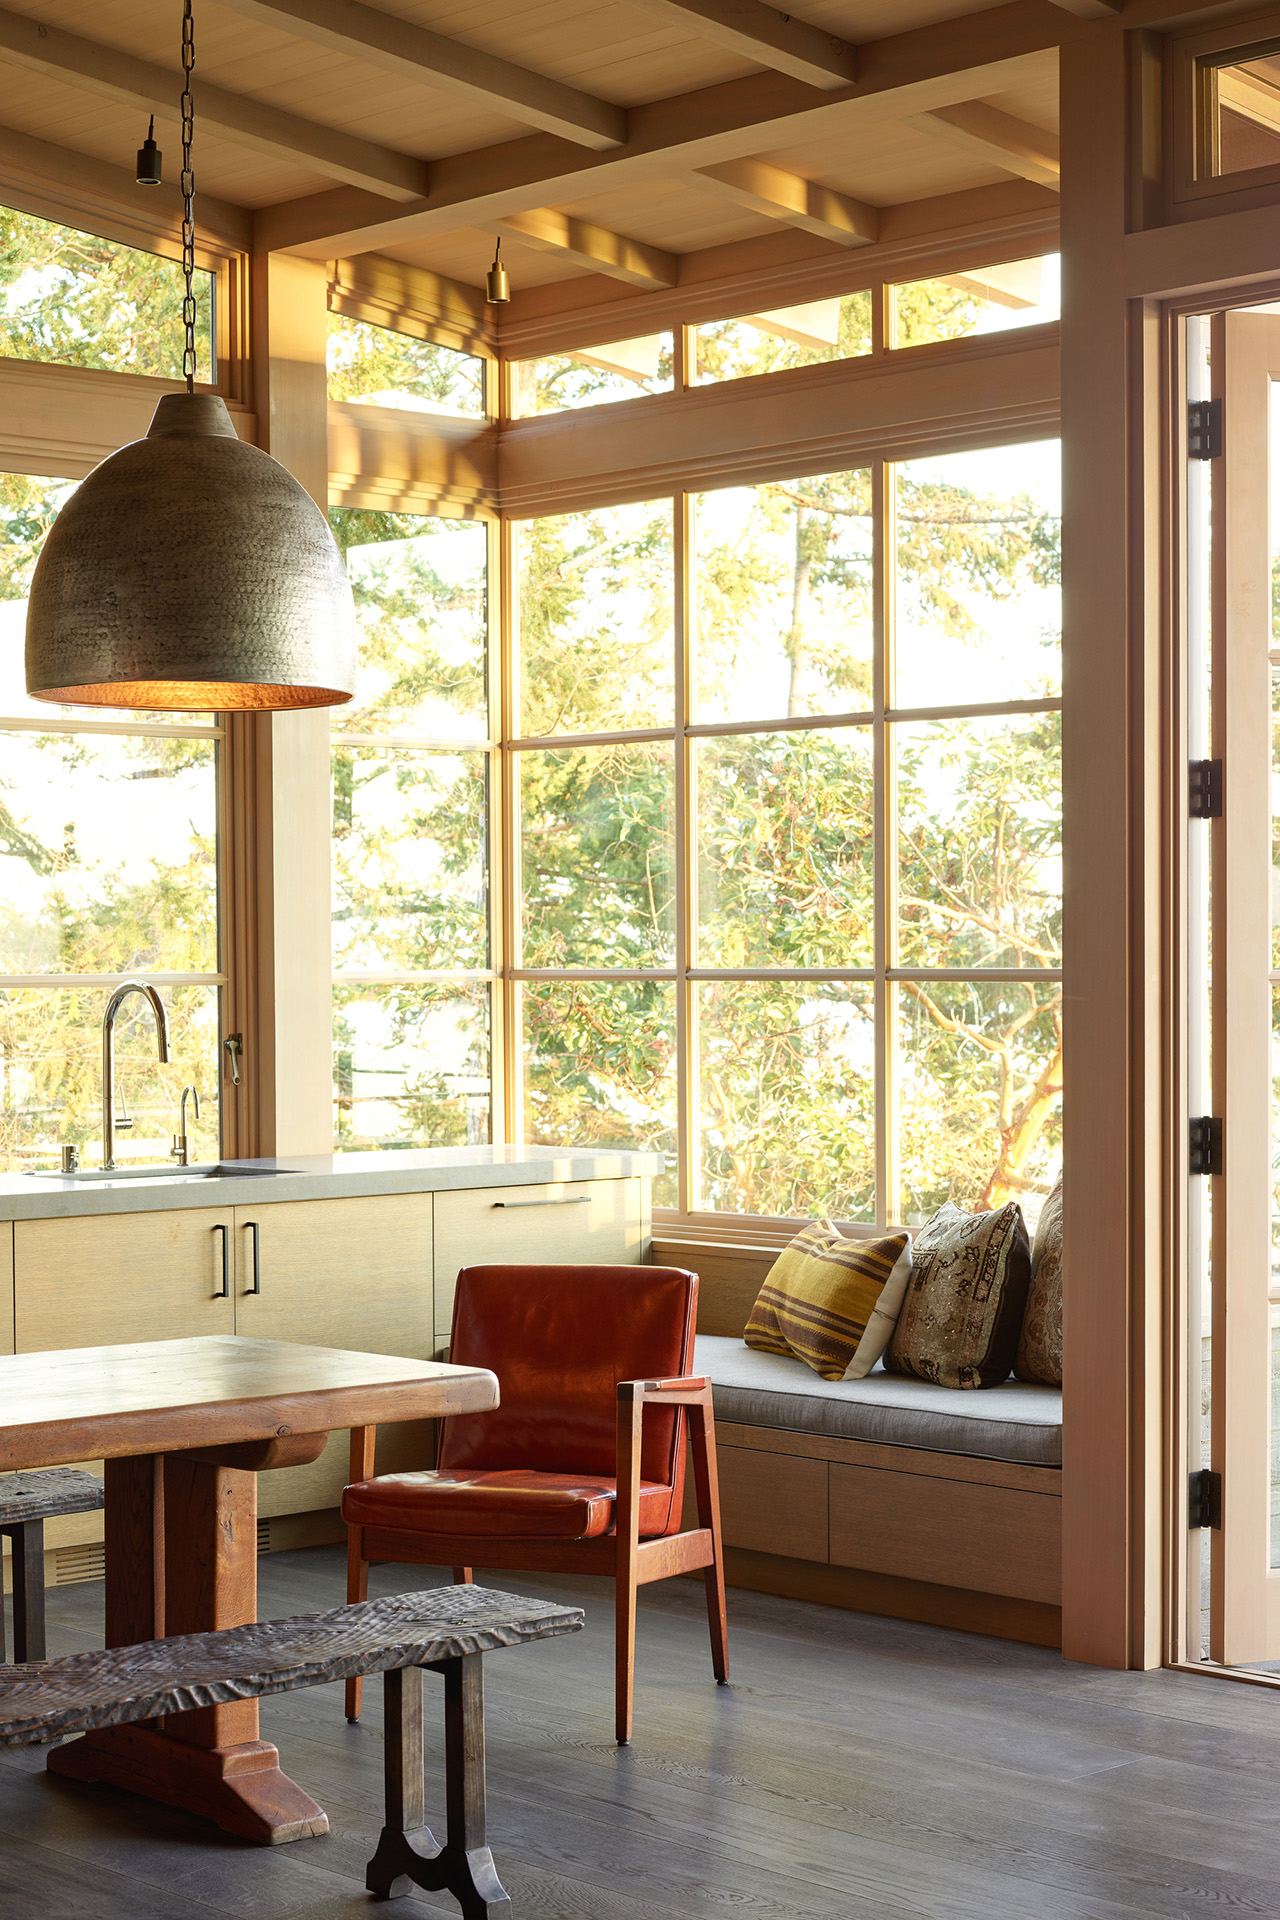 Perfect nook for reading and relaxing with a morning coffee.